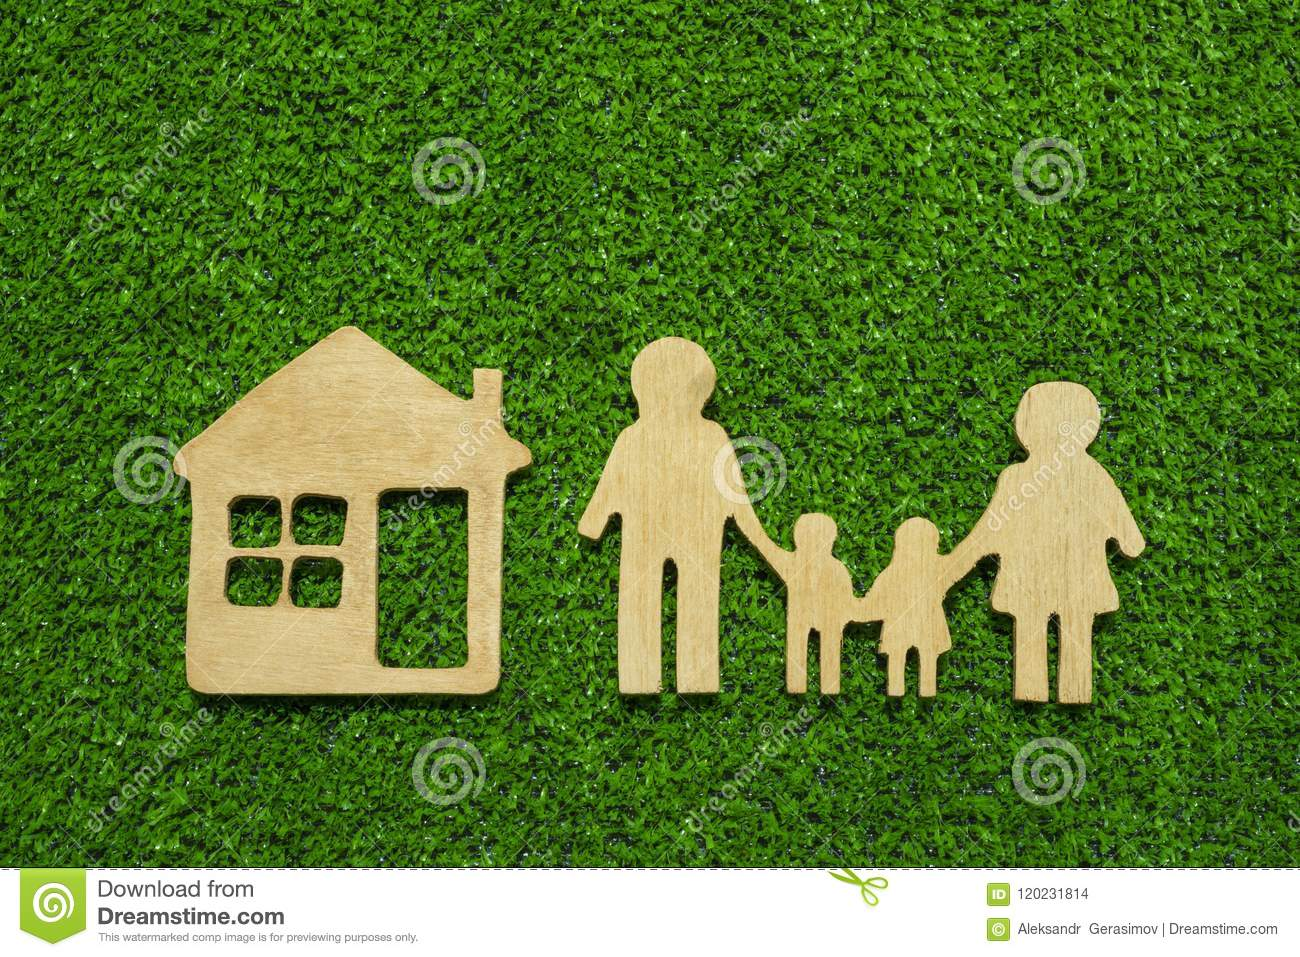 Family symbols and houses made of natural wood on the background of green grass symbolize the eco-house